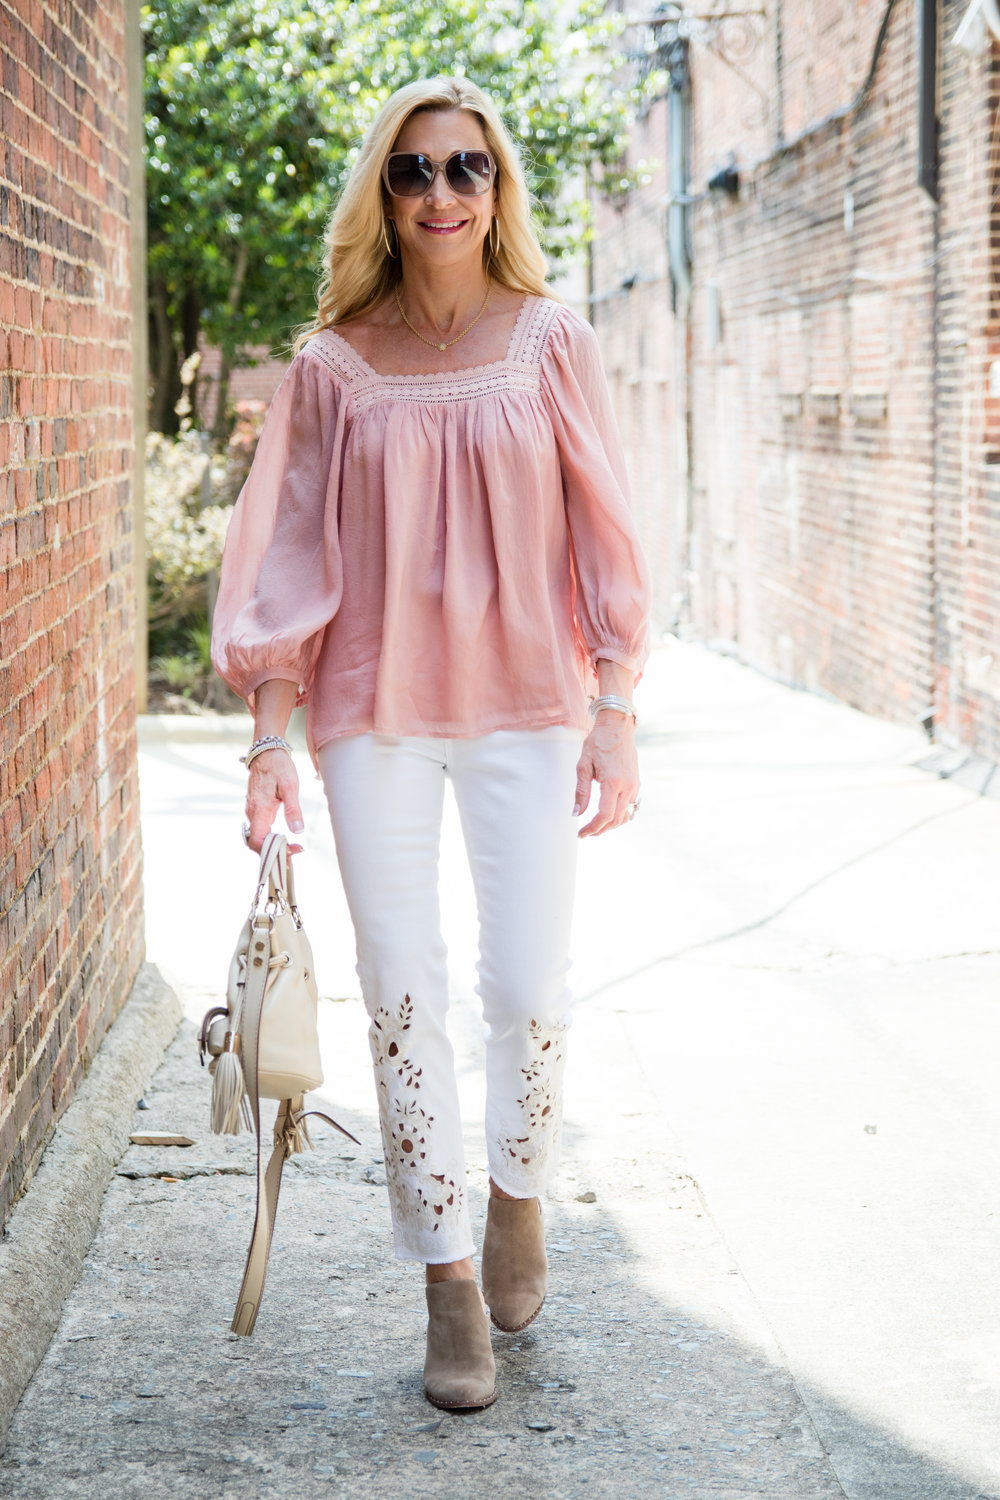 Cutwork detail jeans with boho top and booties